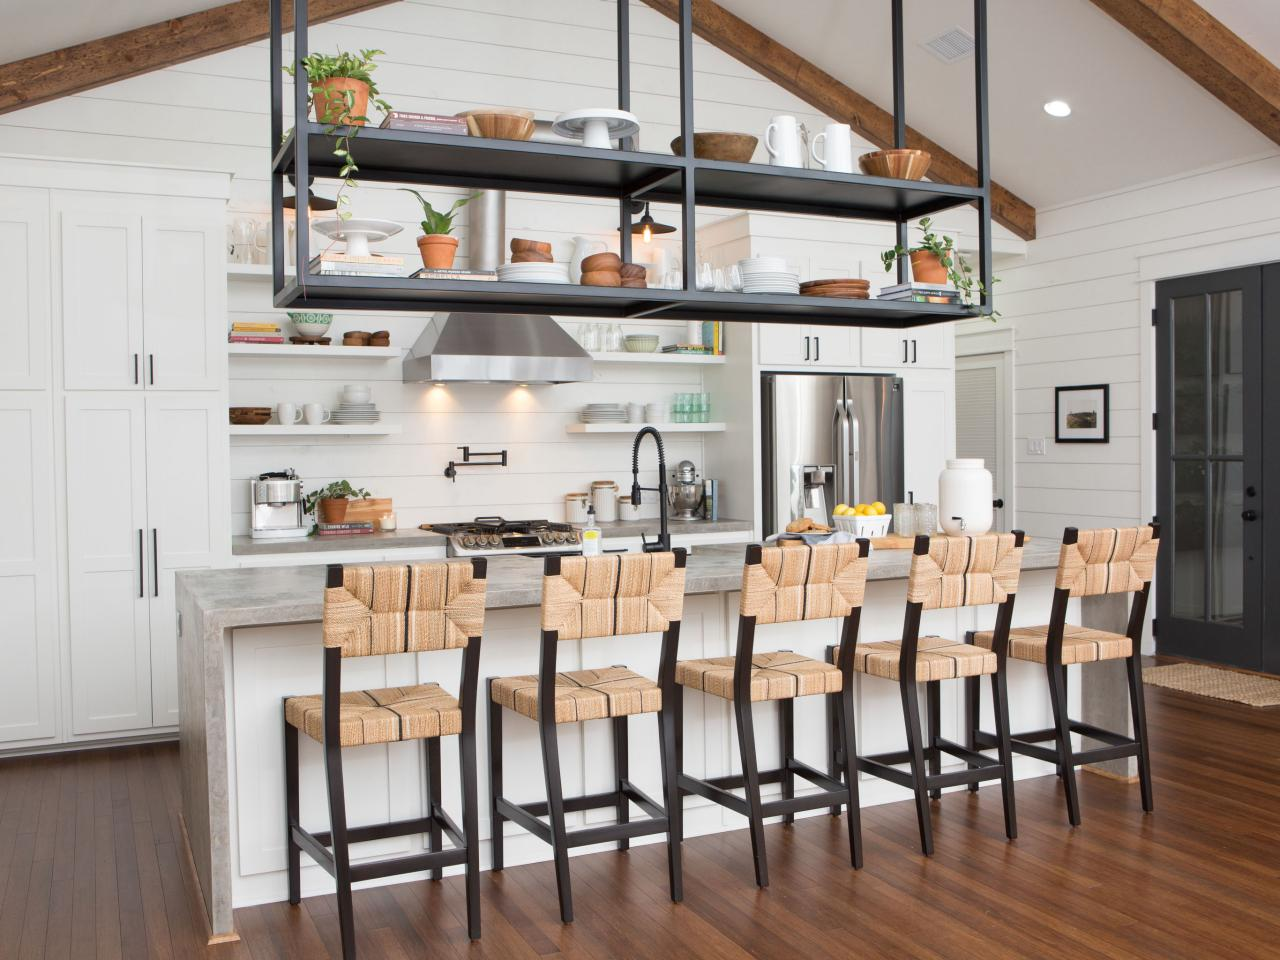 Kitchen Bench Bar Stools